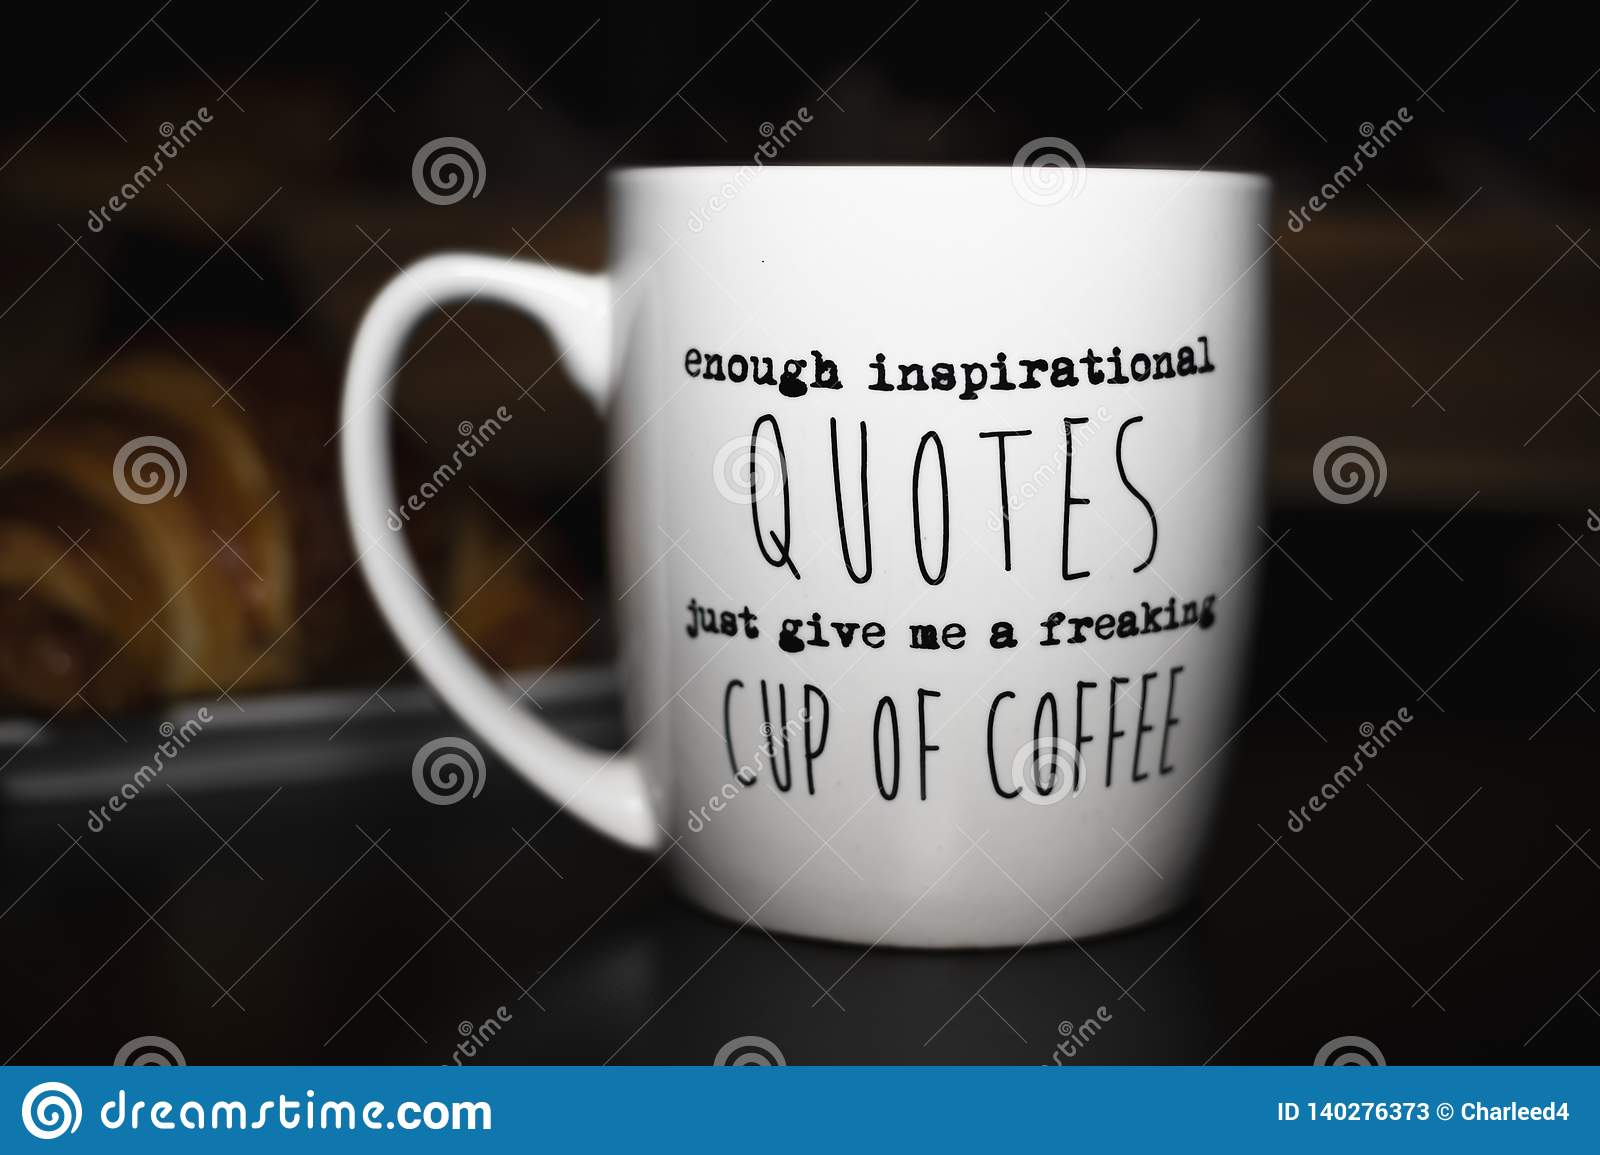 Enough inspirational quotes just give me a freaking cup of coffee`